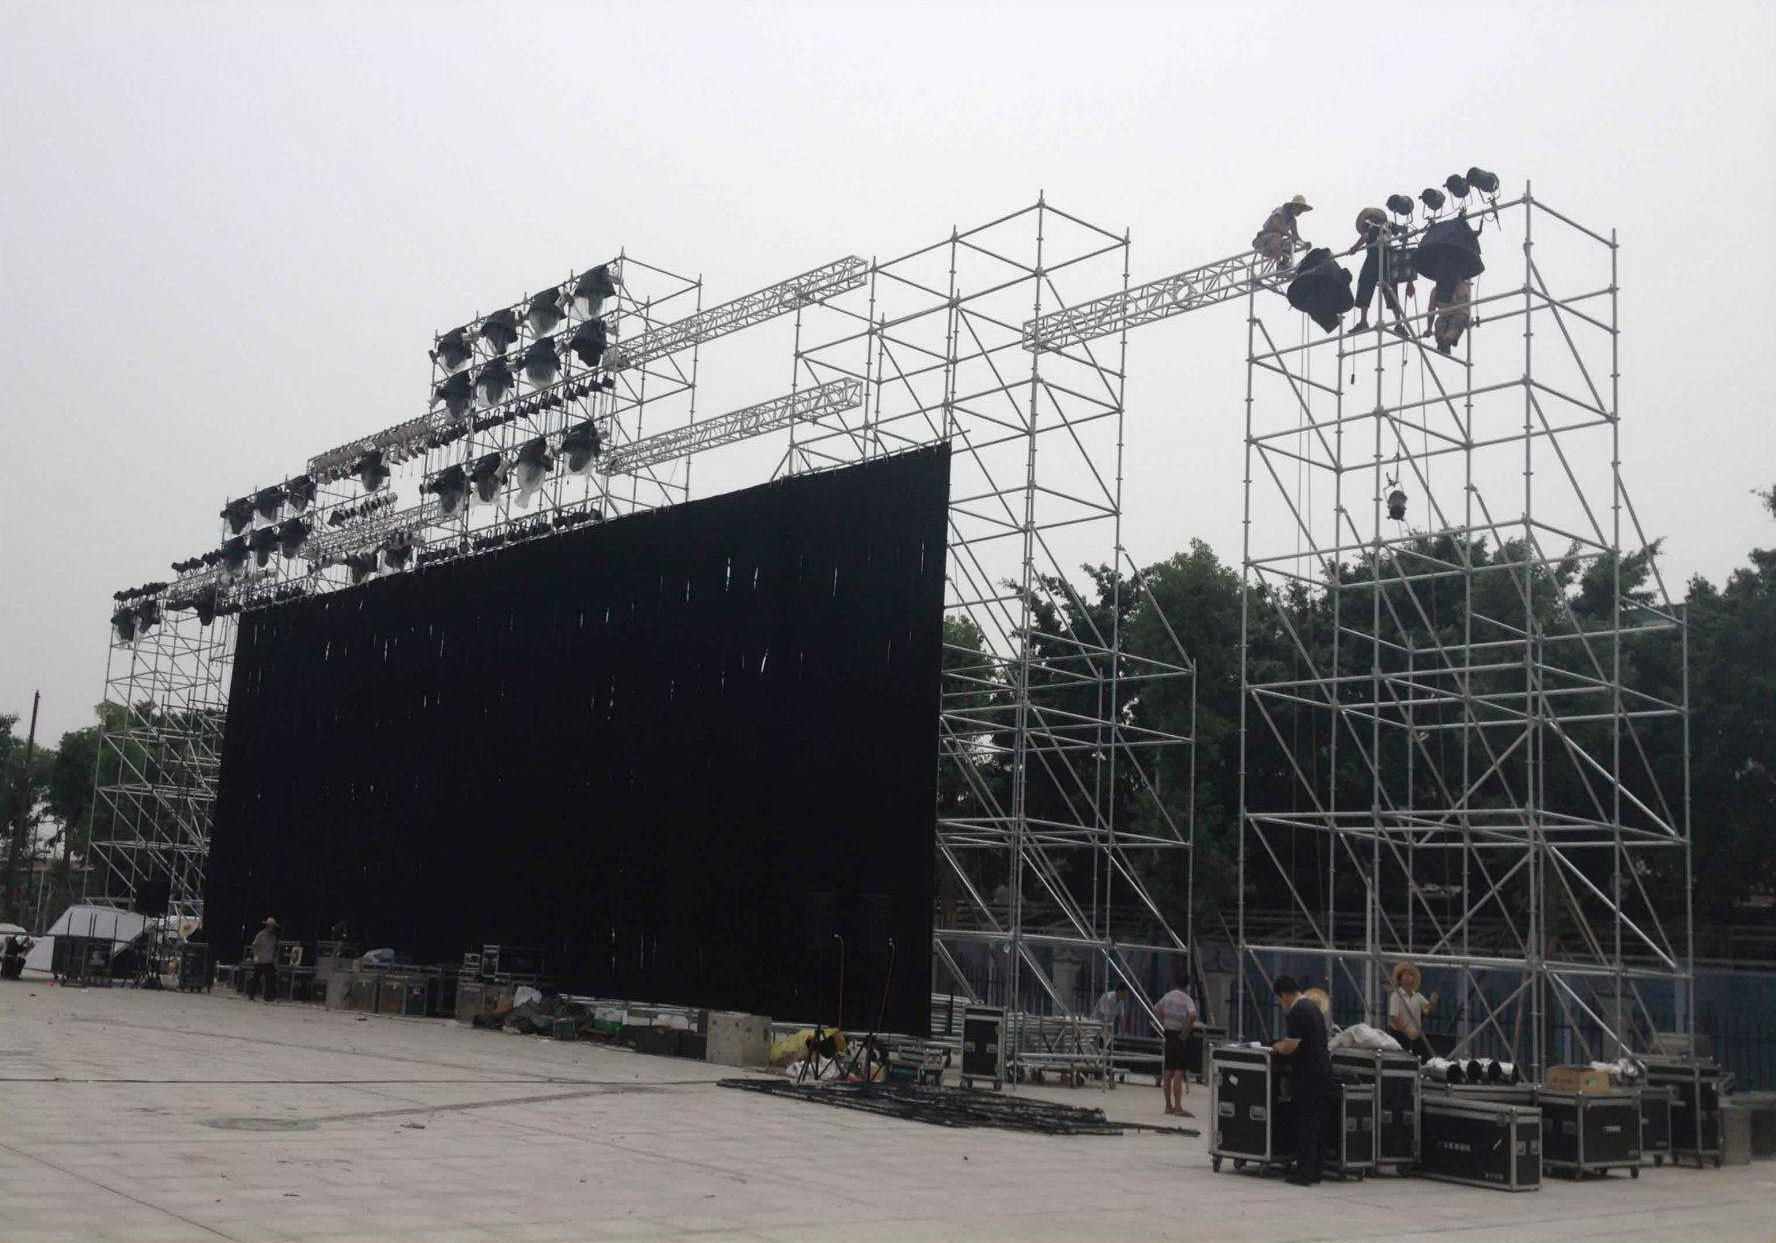 P8mm Stadium Sports LED Display Ground Stand LED Advertising Banner Video Screen